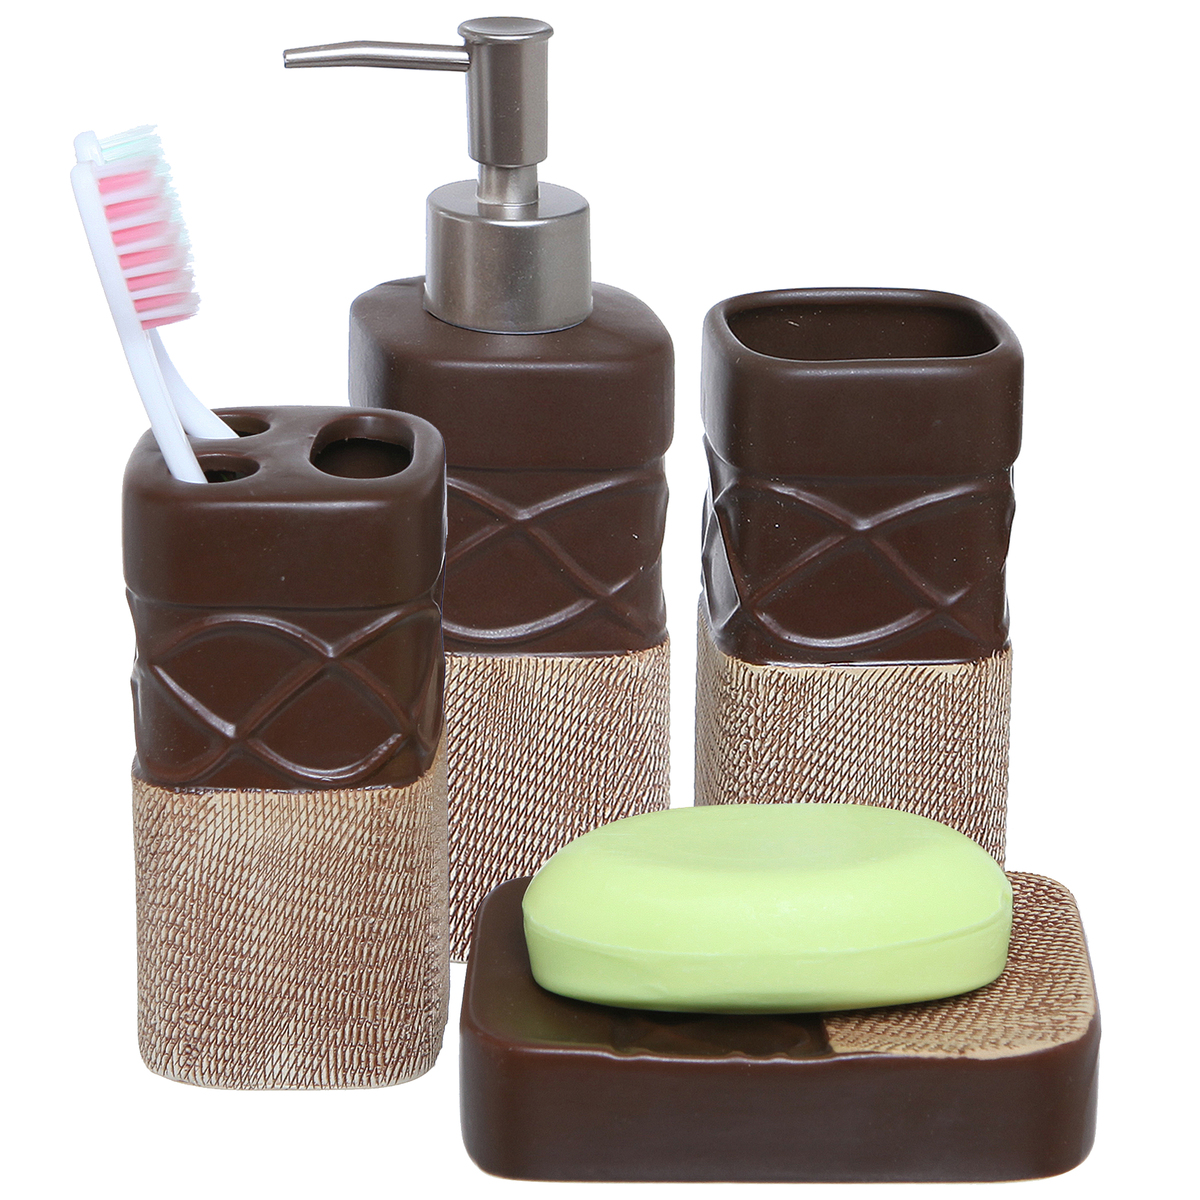 Bathroom Dispenser Set Details About Brown Bathroom Set Toothbrush Holder Tumbler Soap Dish Liquid Soap Dispenser